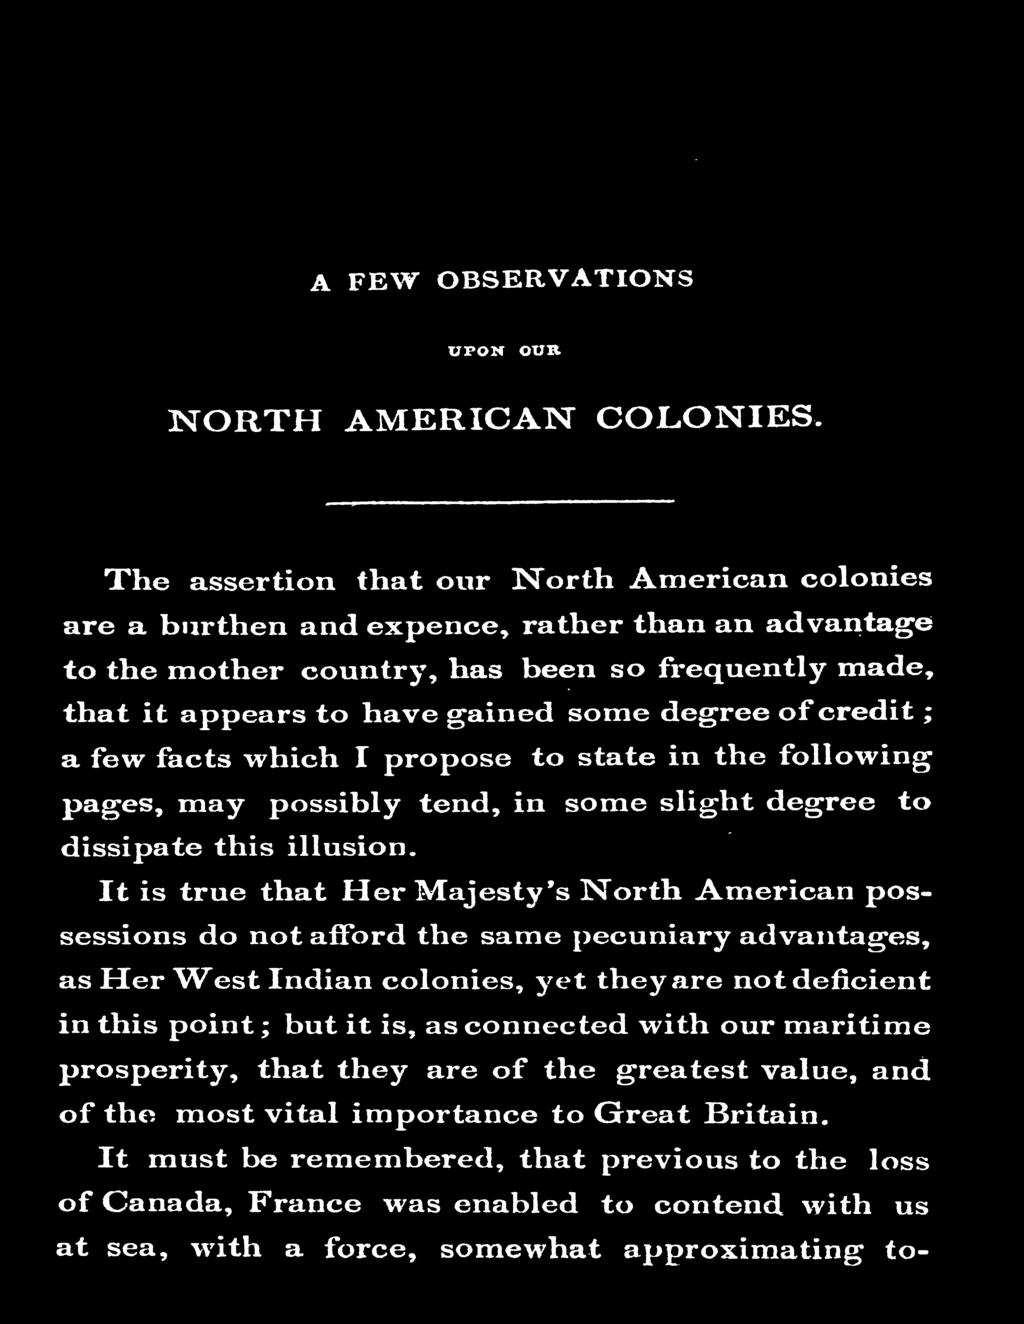 It is true that Her Majesty's North American possessions do not afford the same IJecuniary adva11tages, as Her West Indian colonies, )ret they